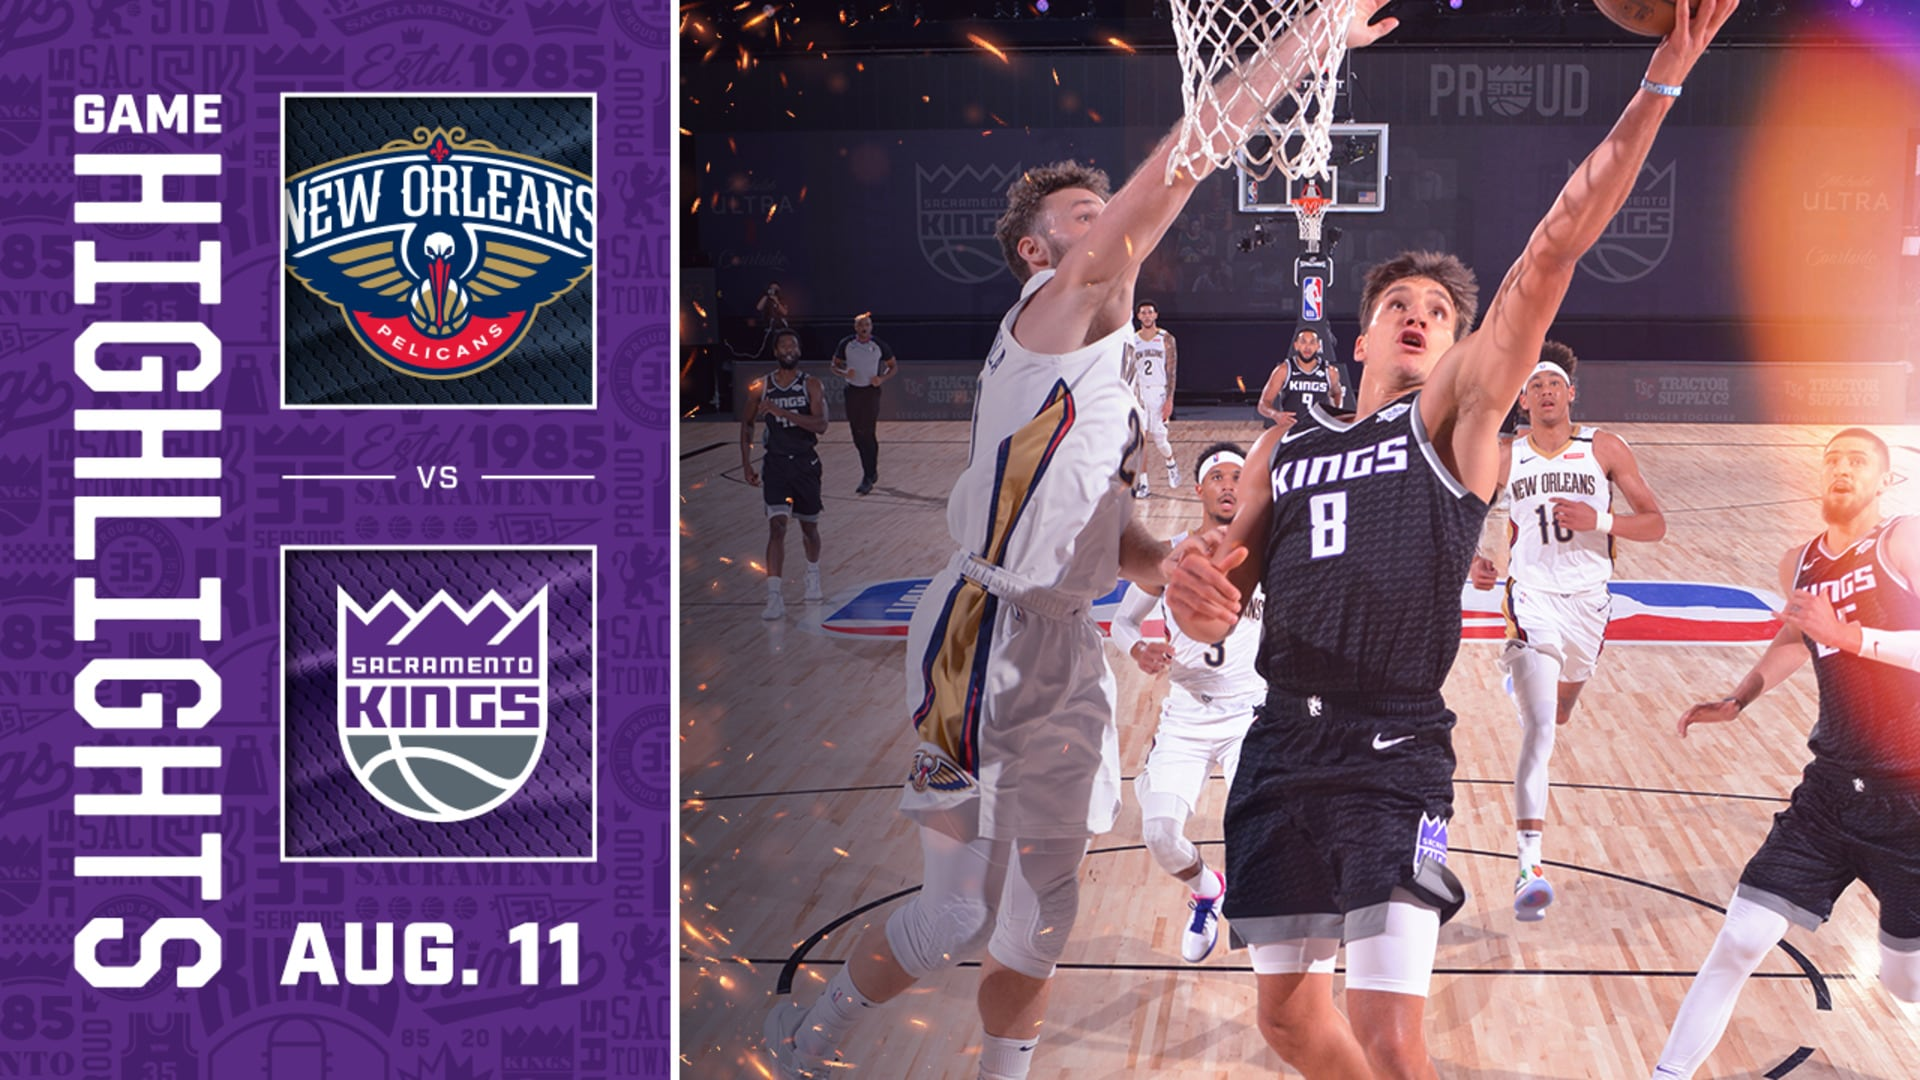 Kings Secure Another W | Kings vs Pelicans 8.11.20